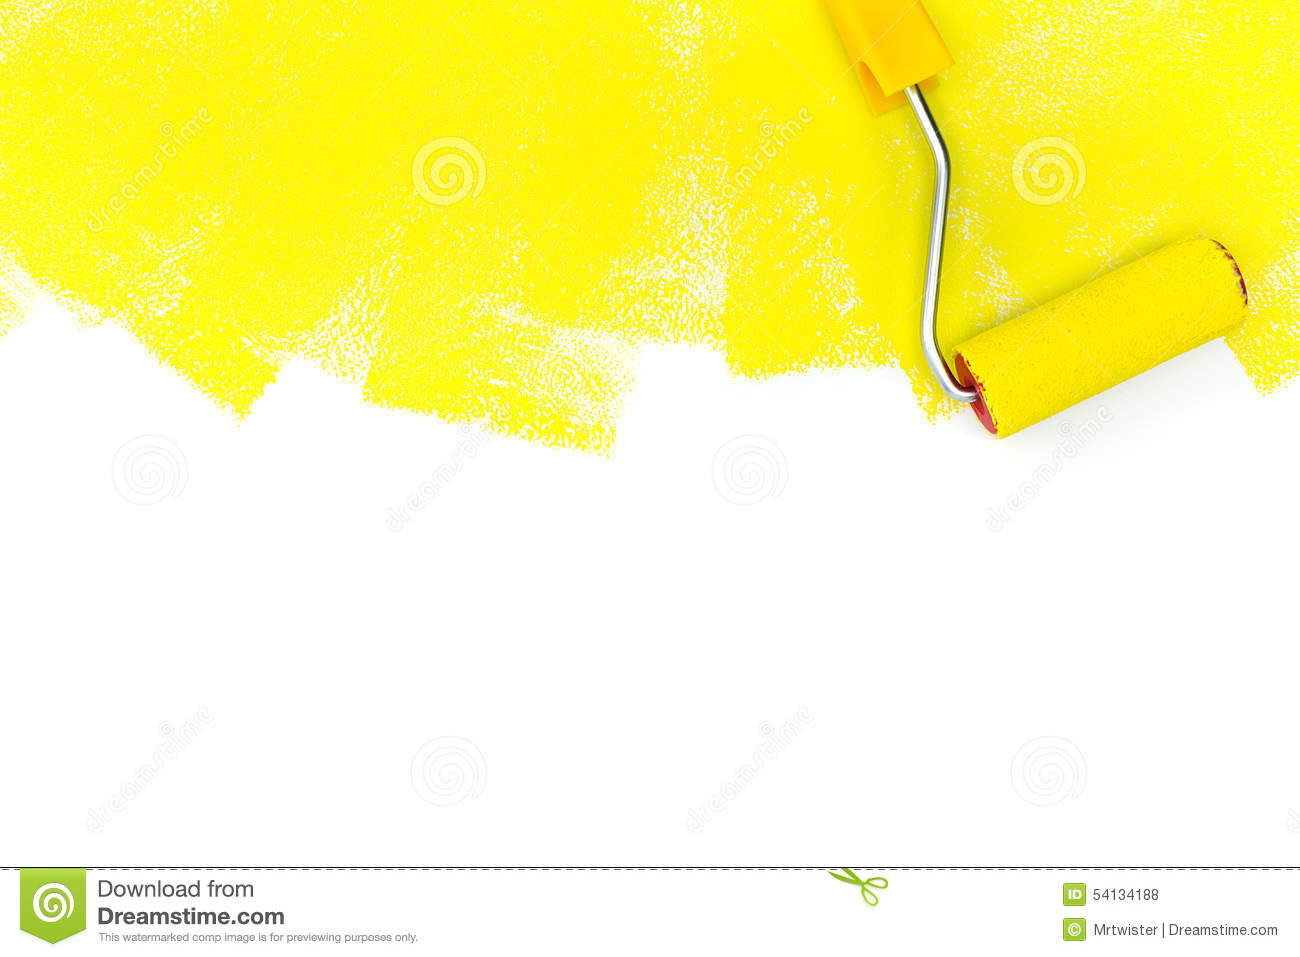 Painting a wall with roller and yellow paint stock photo for White paint going yellow